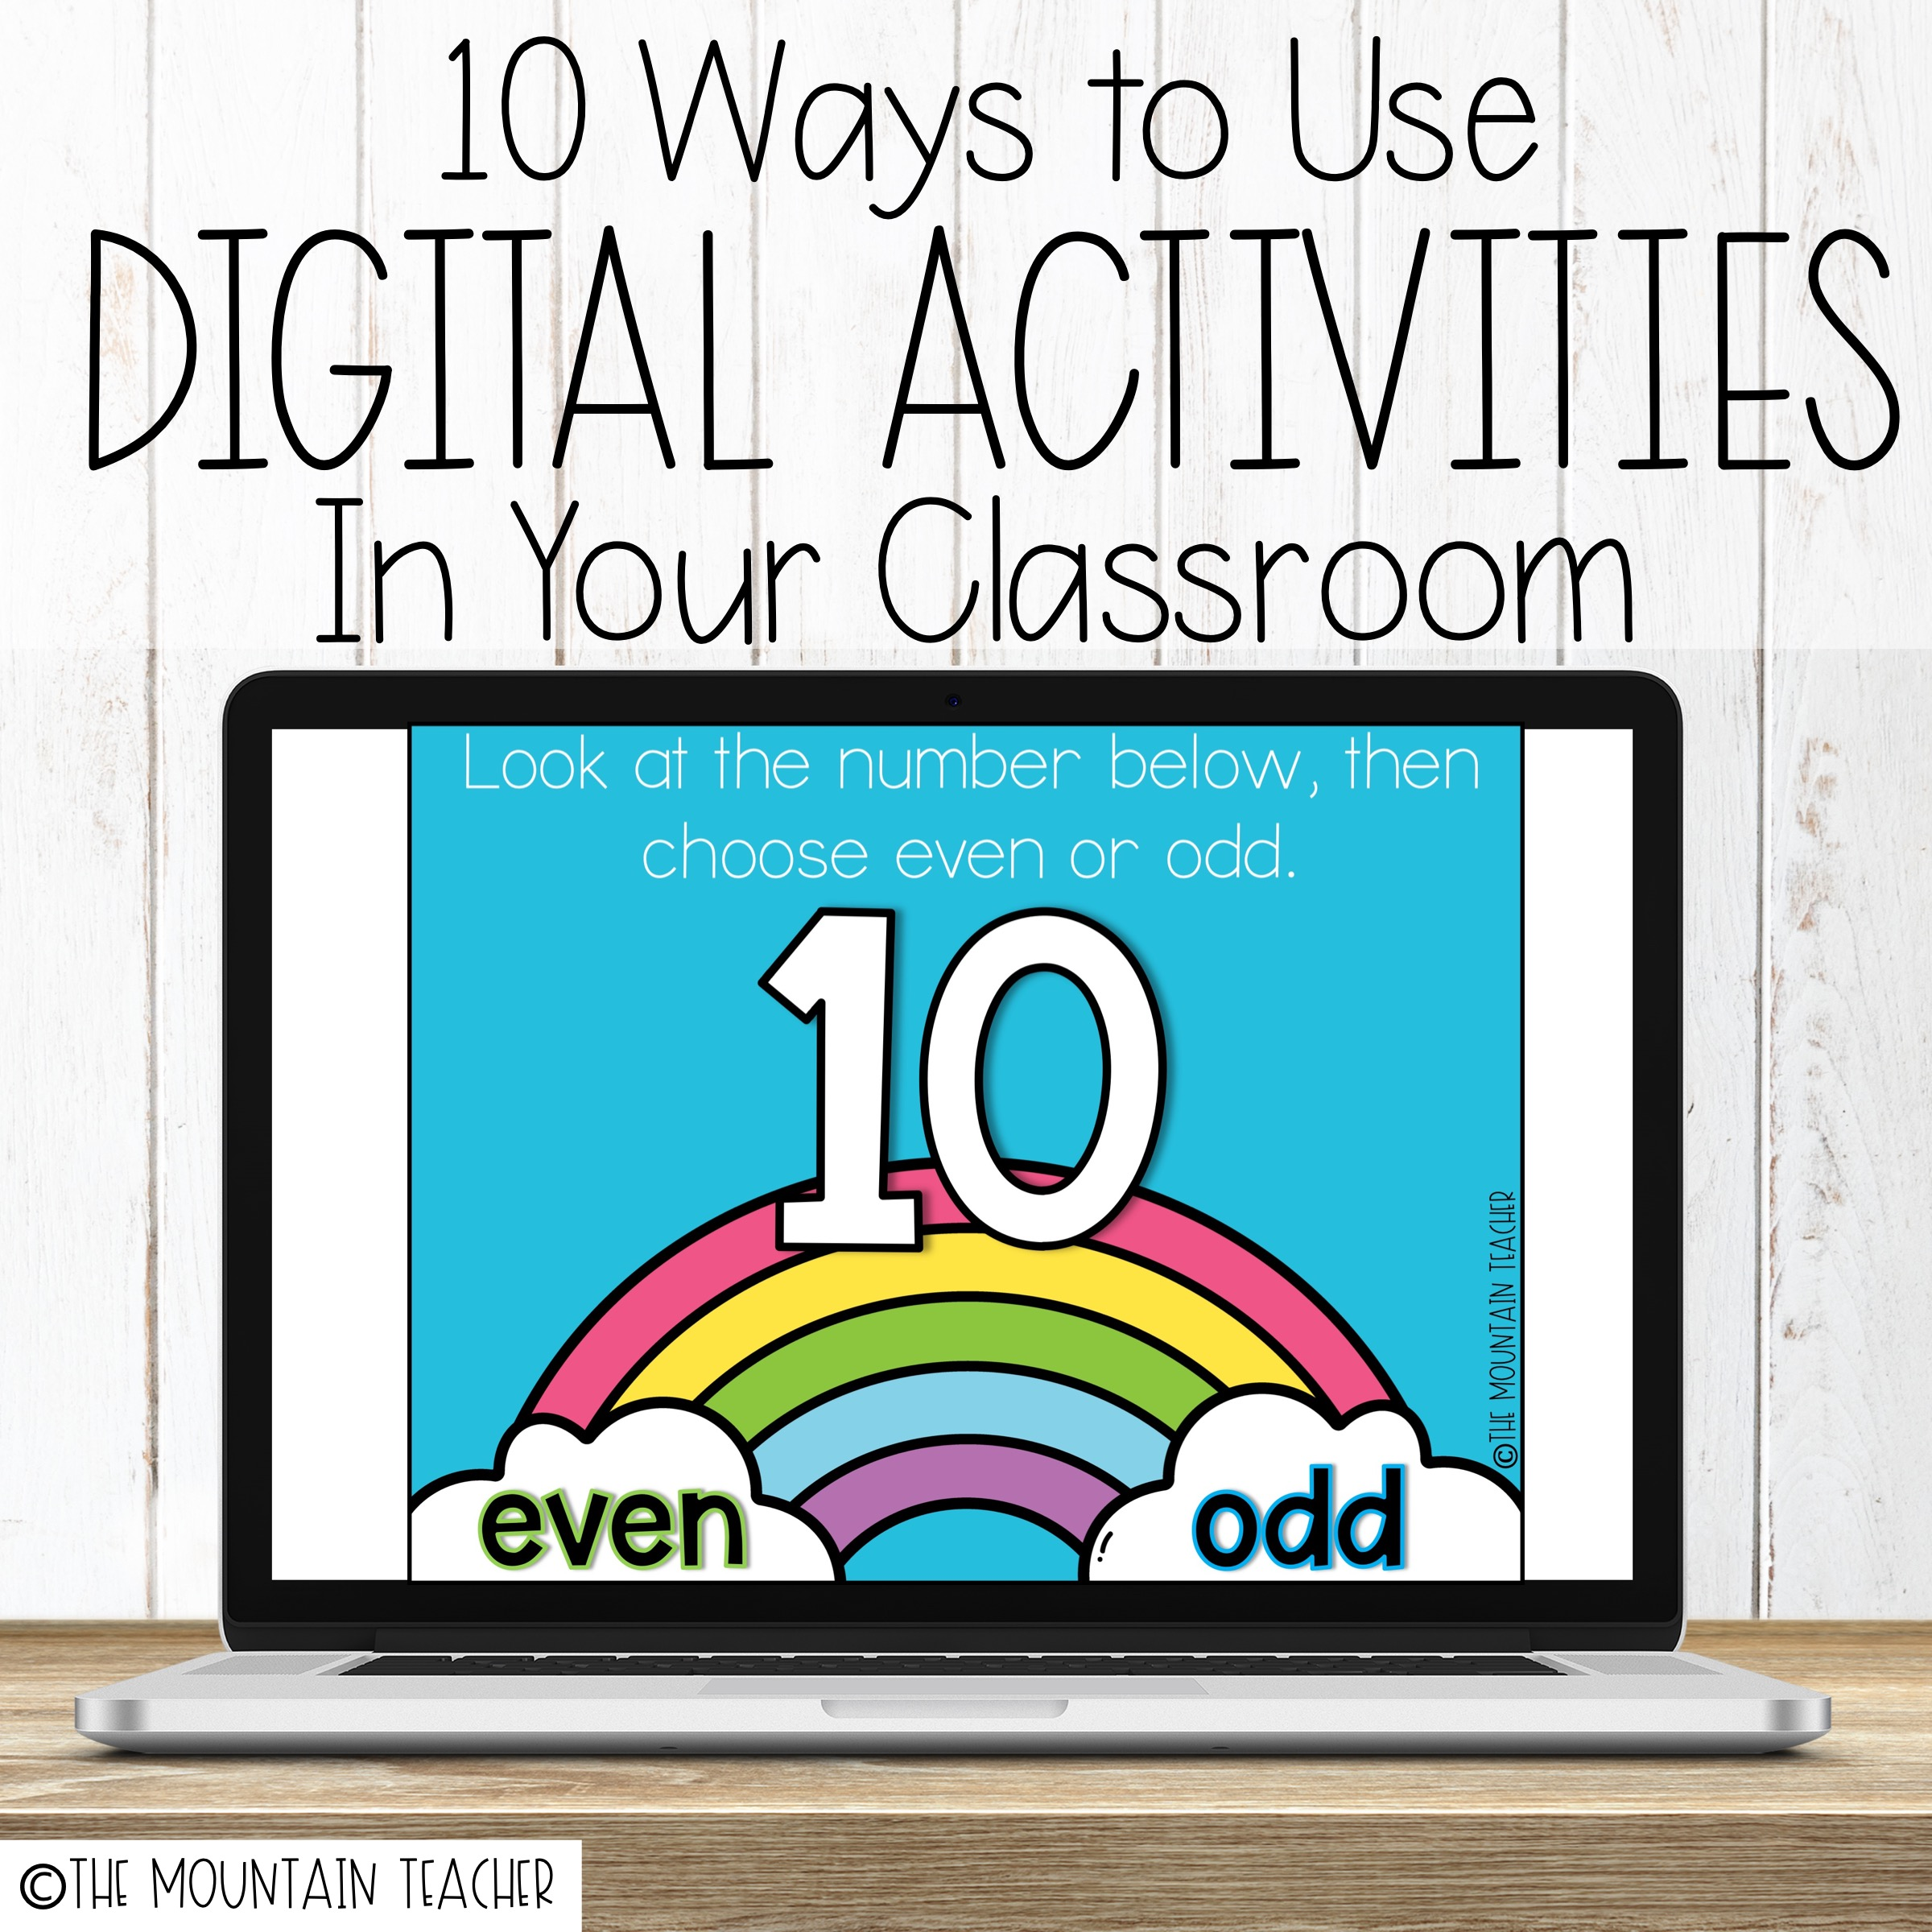 10 Ways to Use Digital Activities In Elementary Classrooms